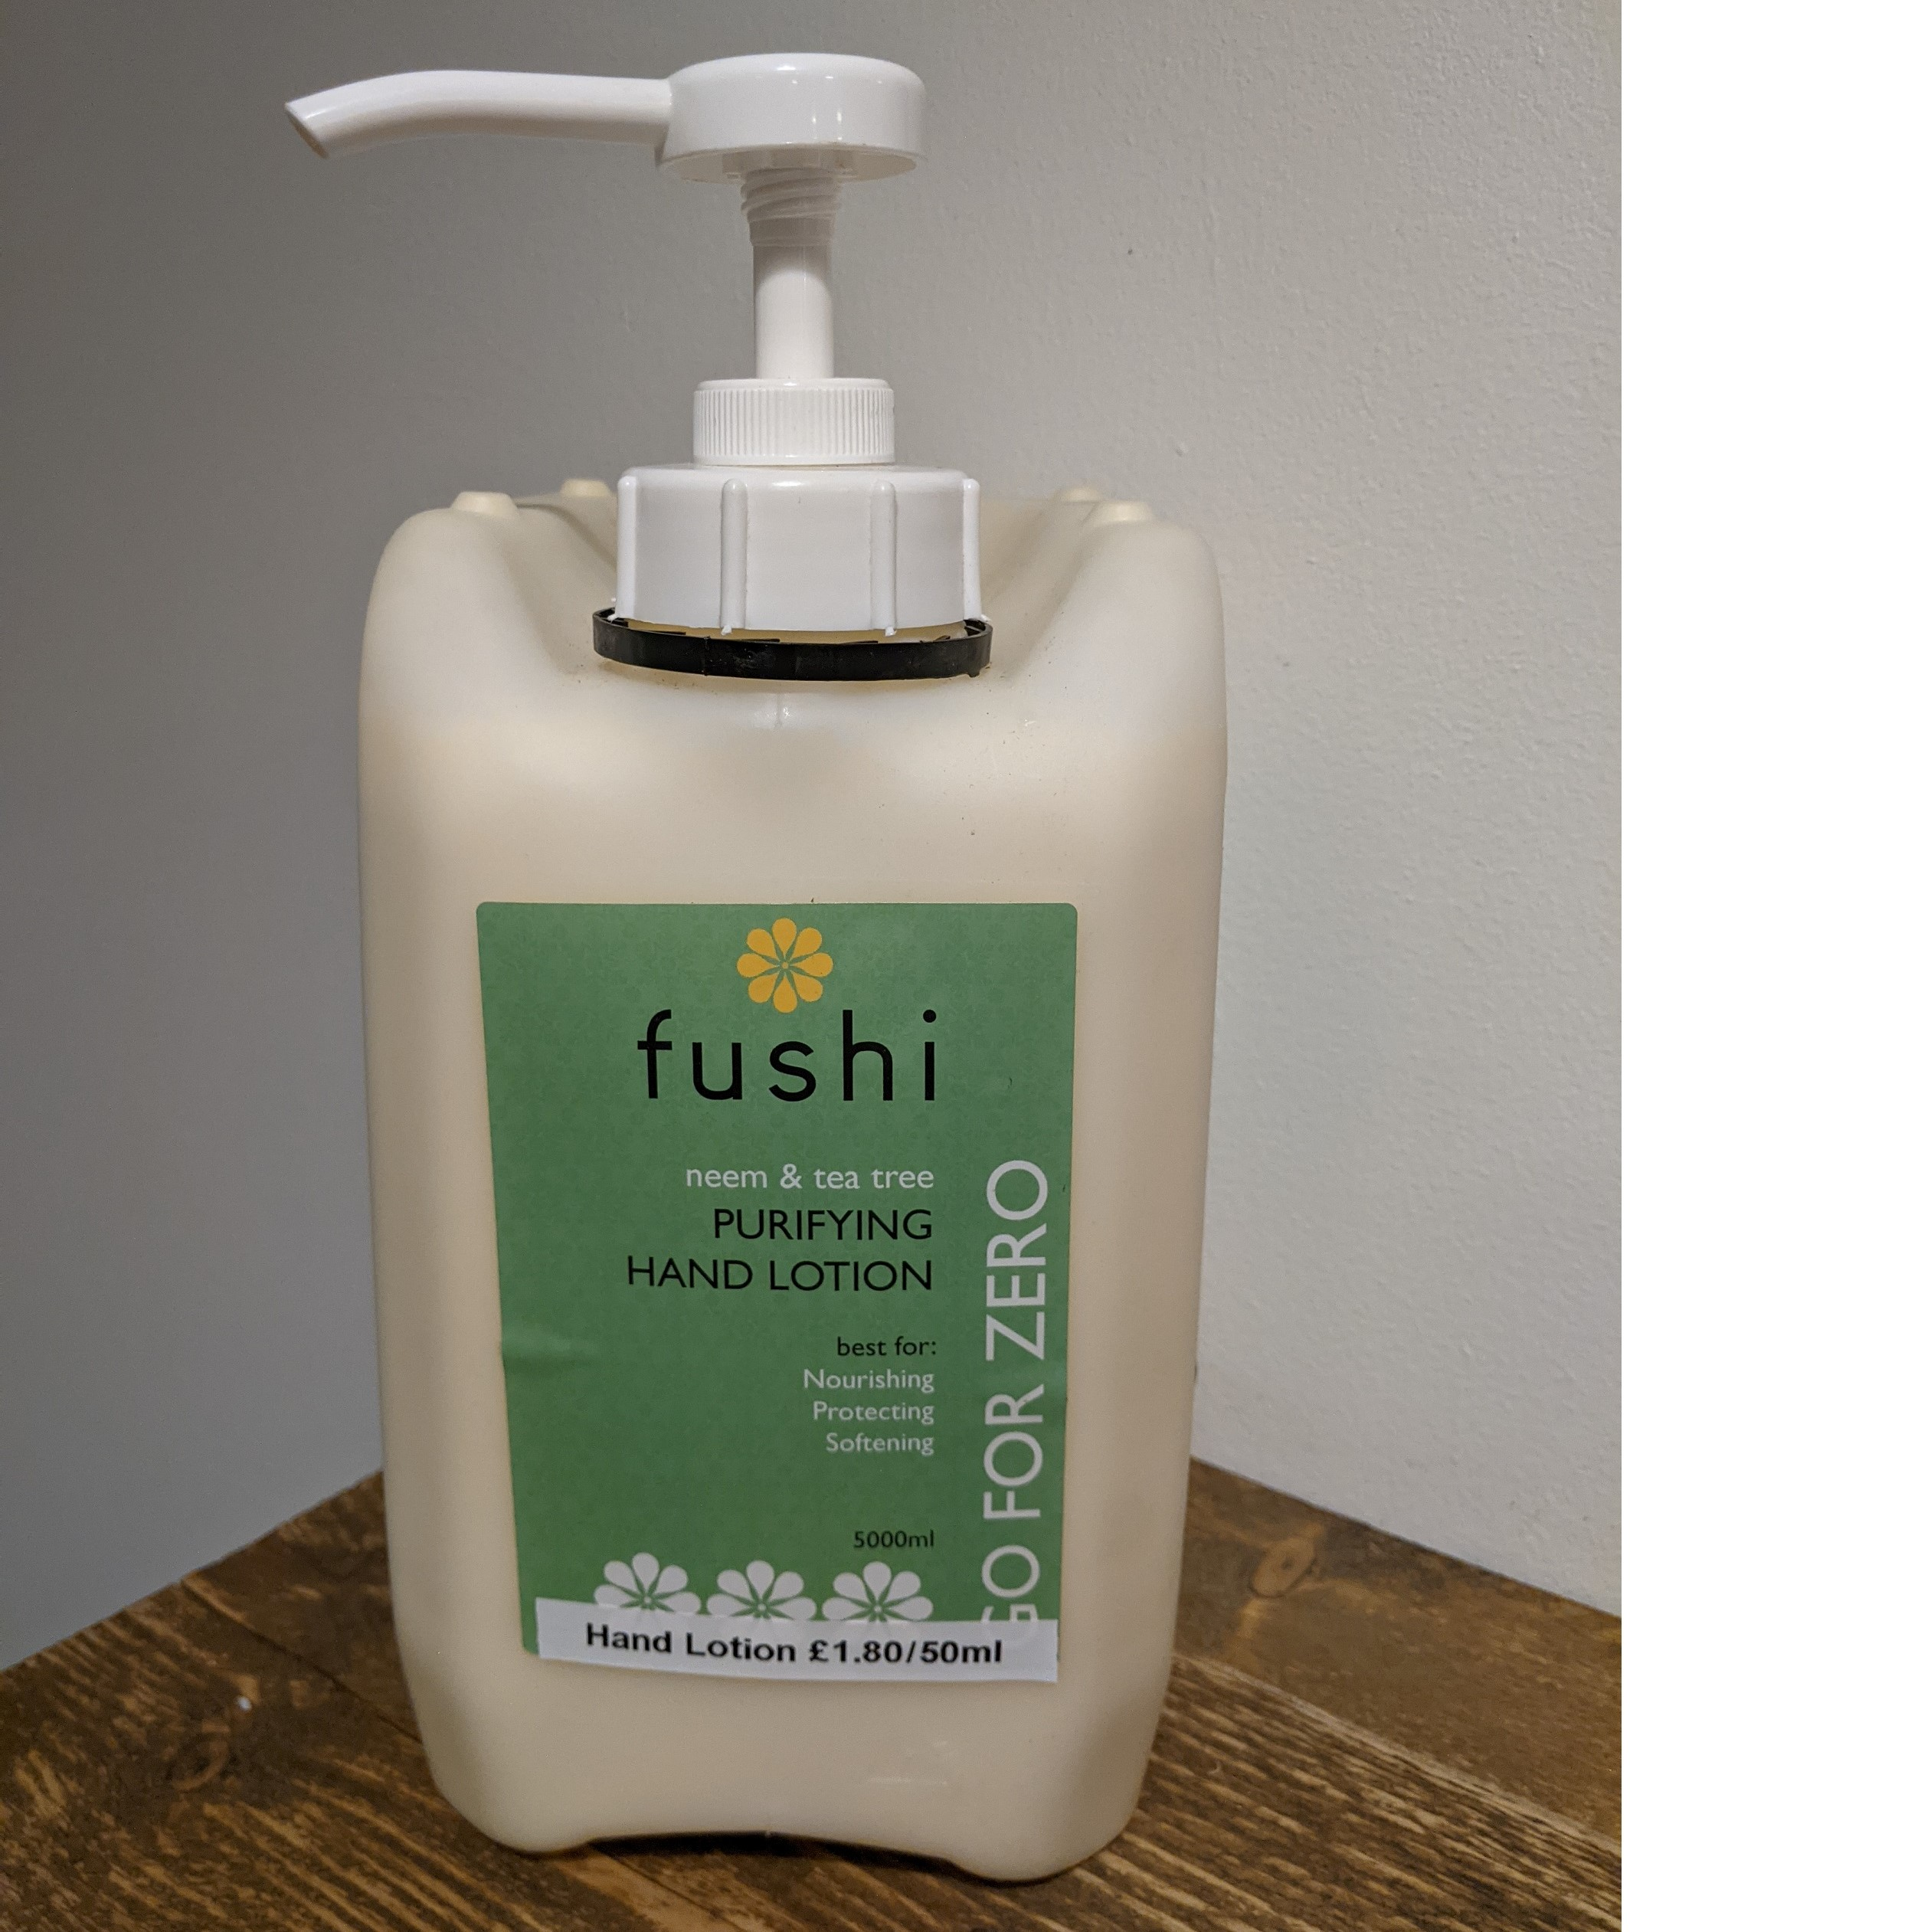 Hand Lotion, Purifying, Neem & Tea Tree (Refill) (Organic) by Fushi